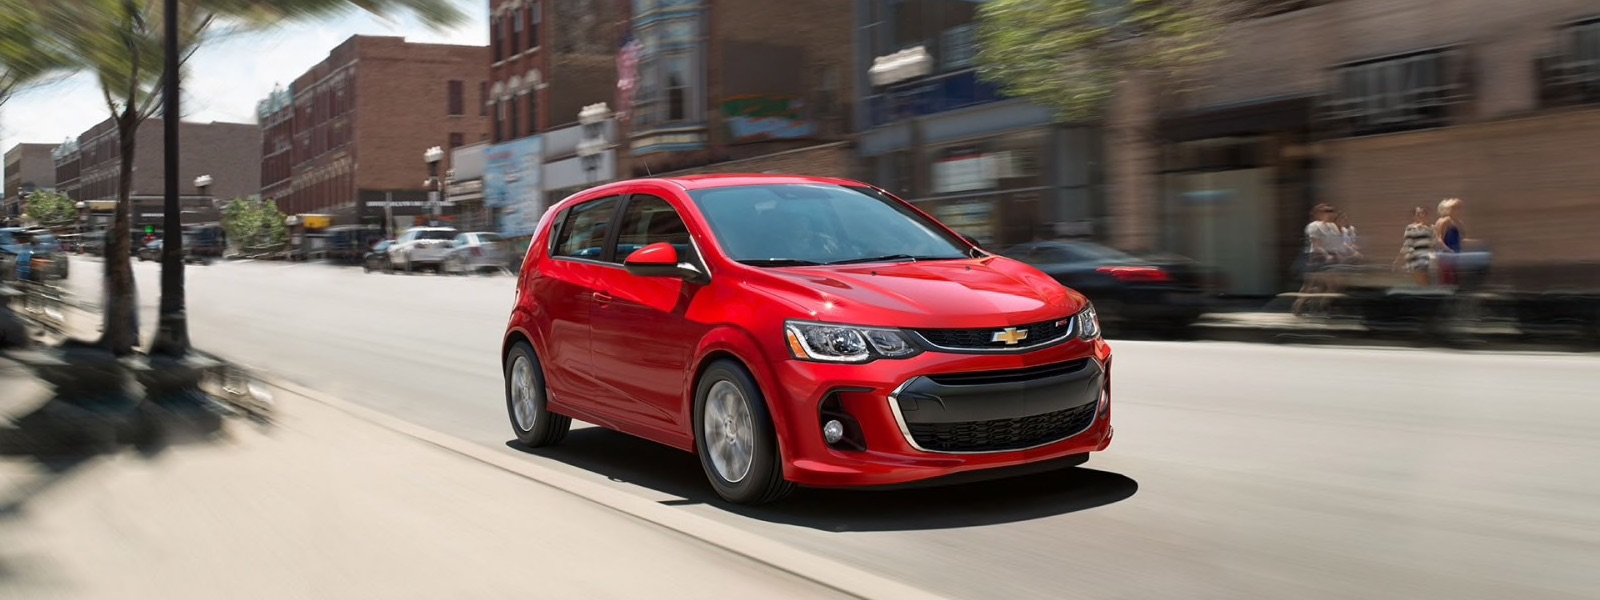 A red 2017 Chevy Sonic is driving on a street in Albany, NY.